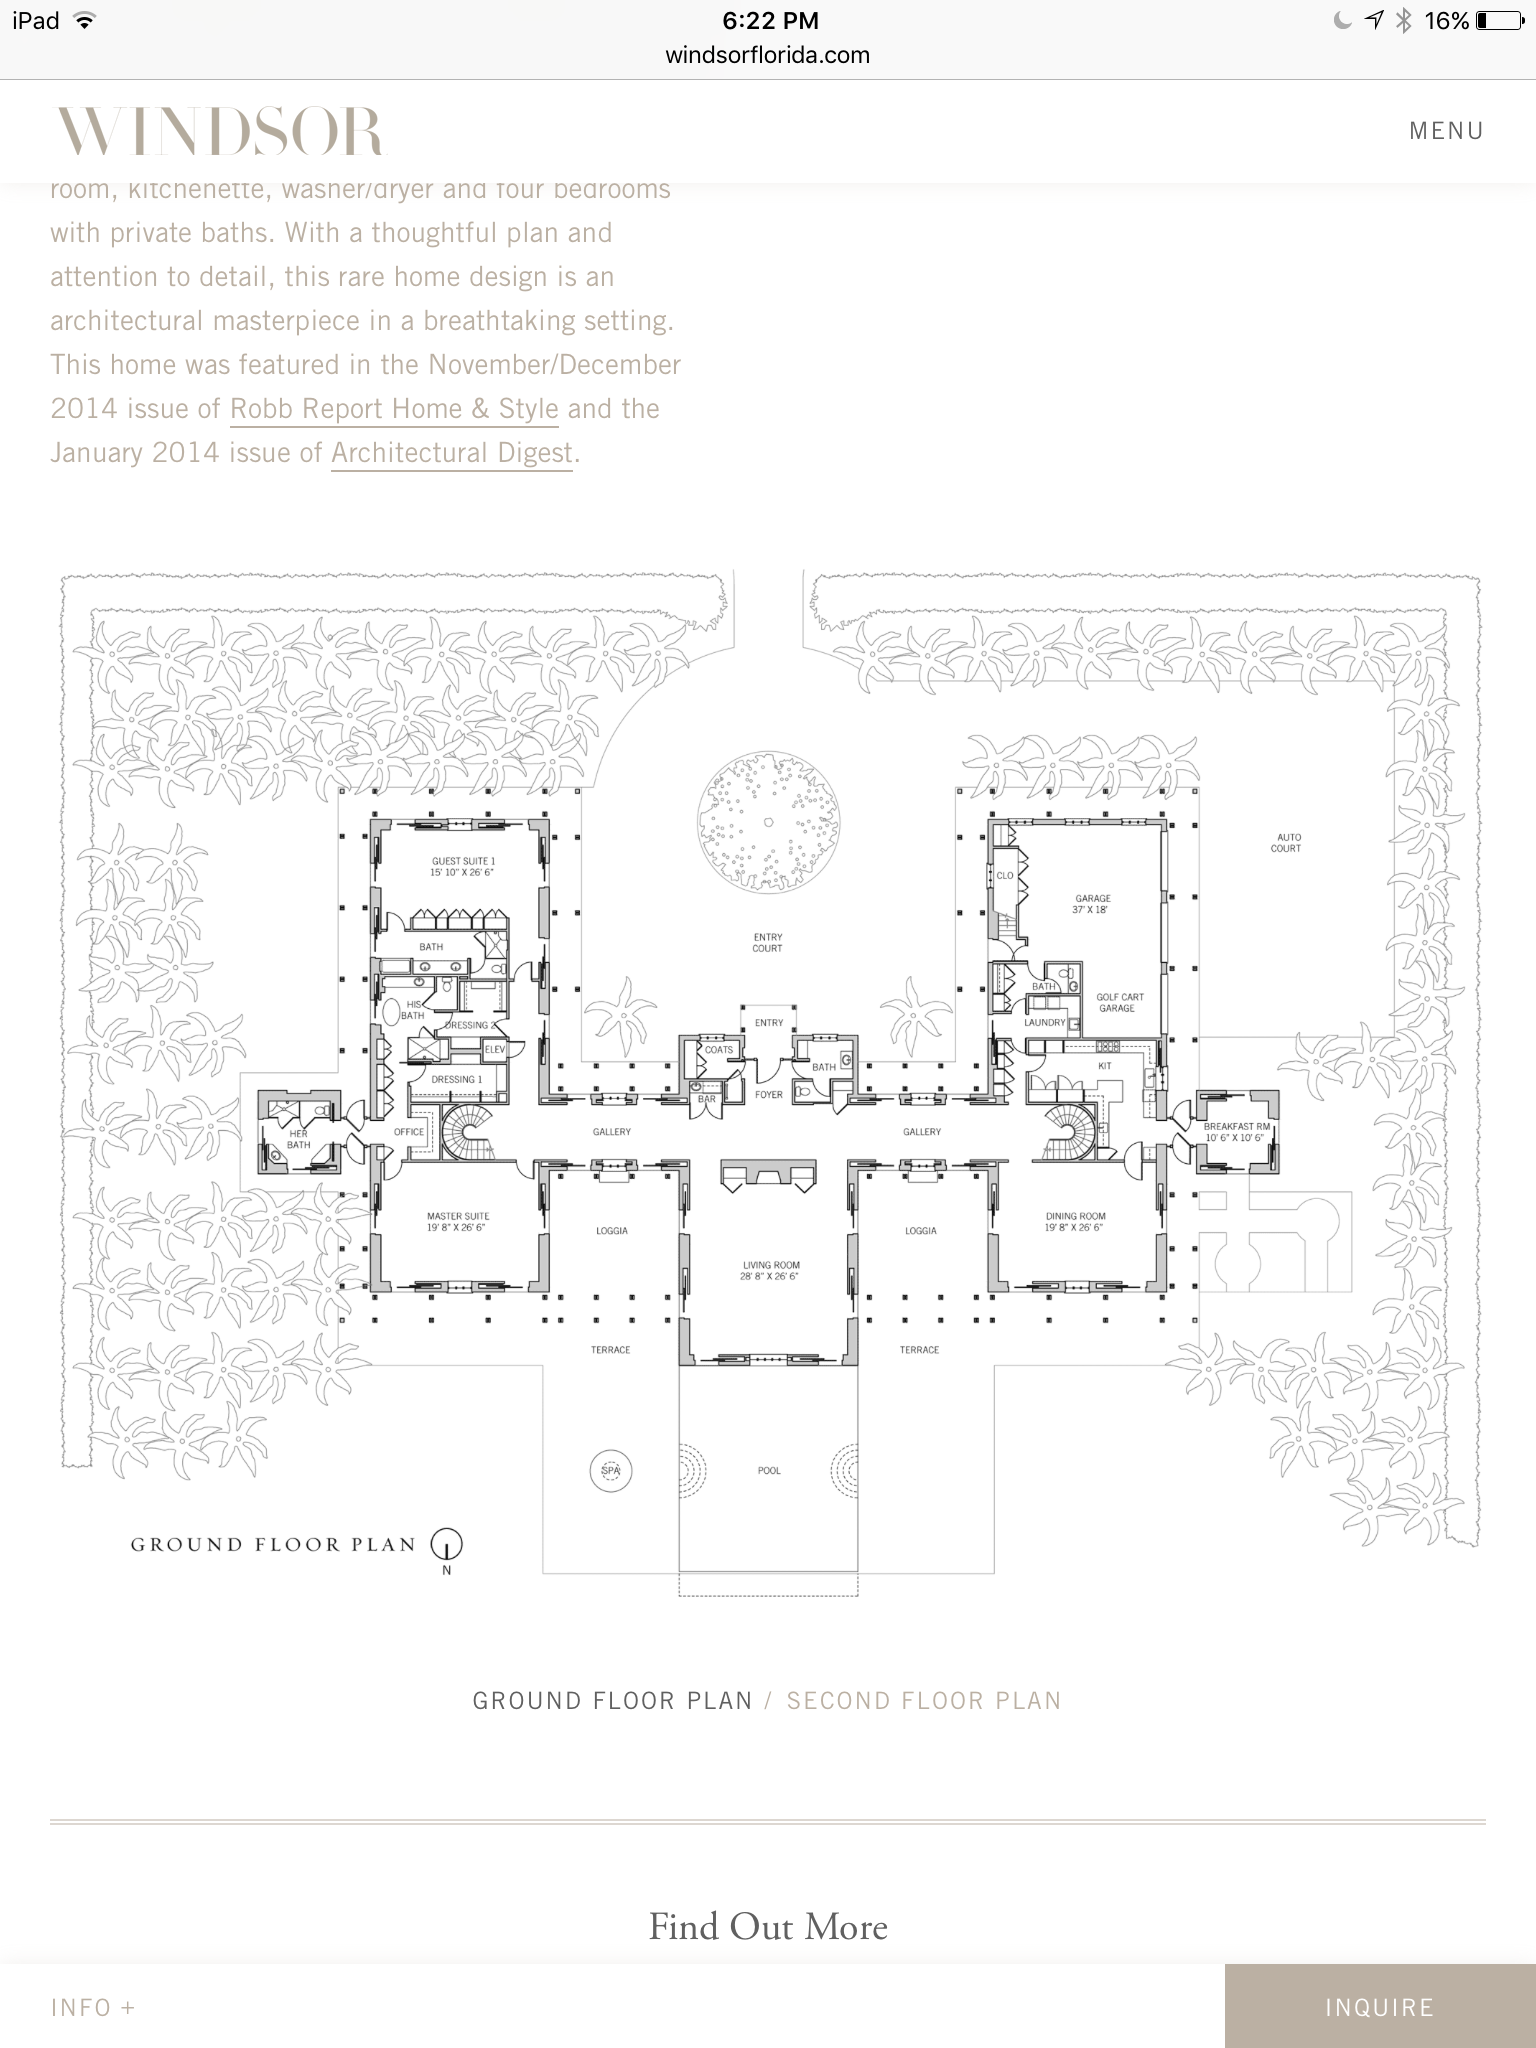 Pin by tad bratten on architectural elevations plans pinterest windsor florida elevation plan crossword floor plans les champs house plans crossword puzzles blueprints for homes house floor plans malvernweather Images